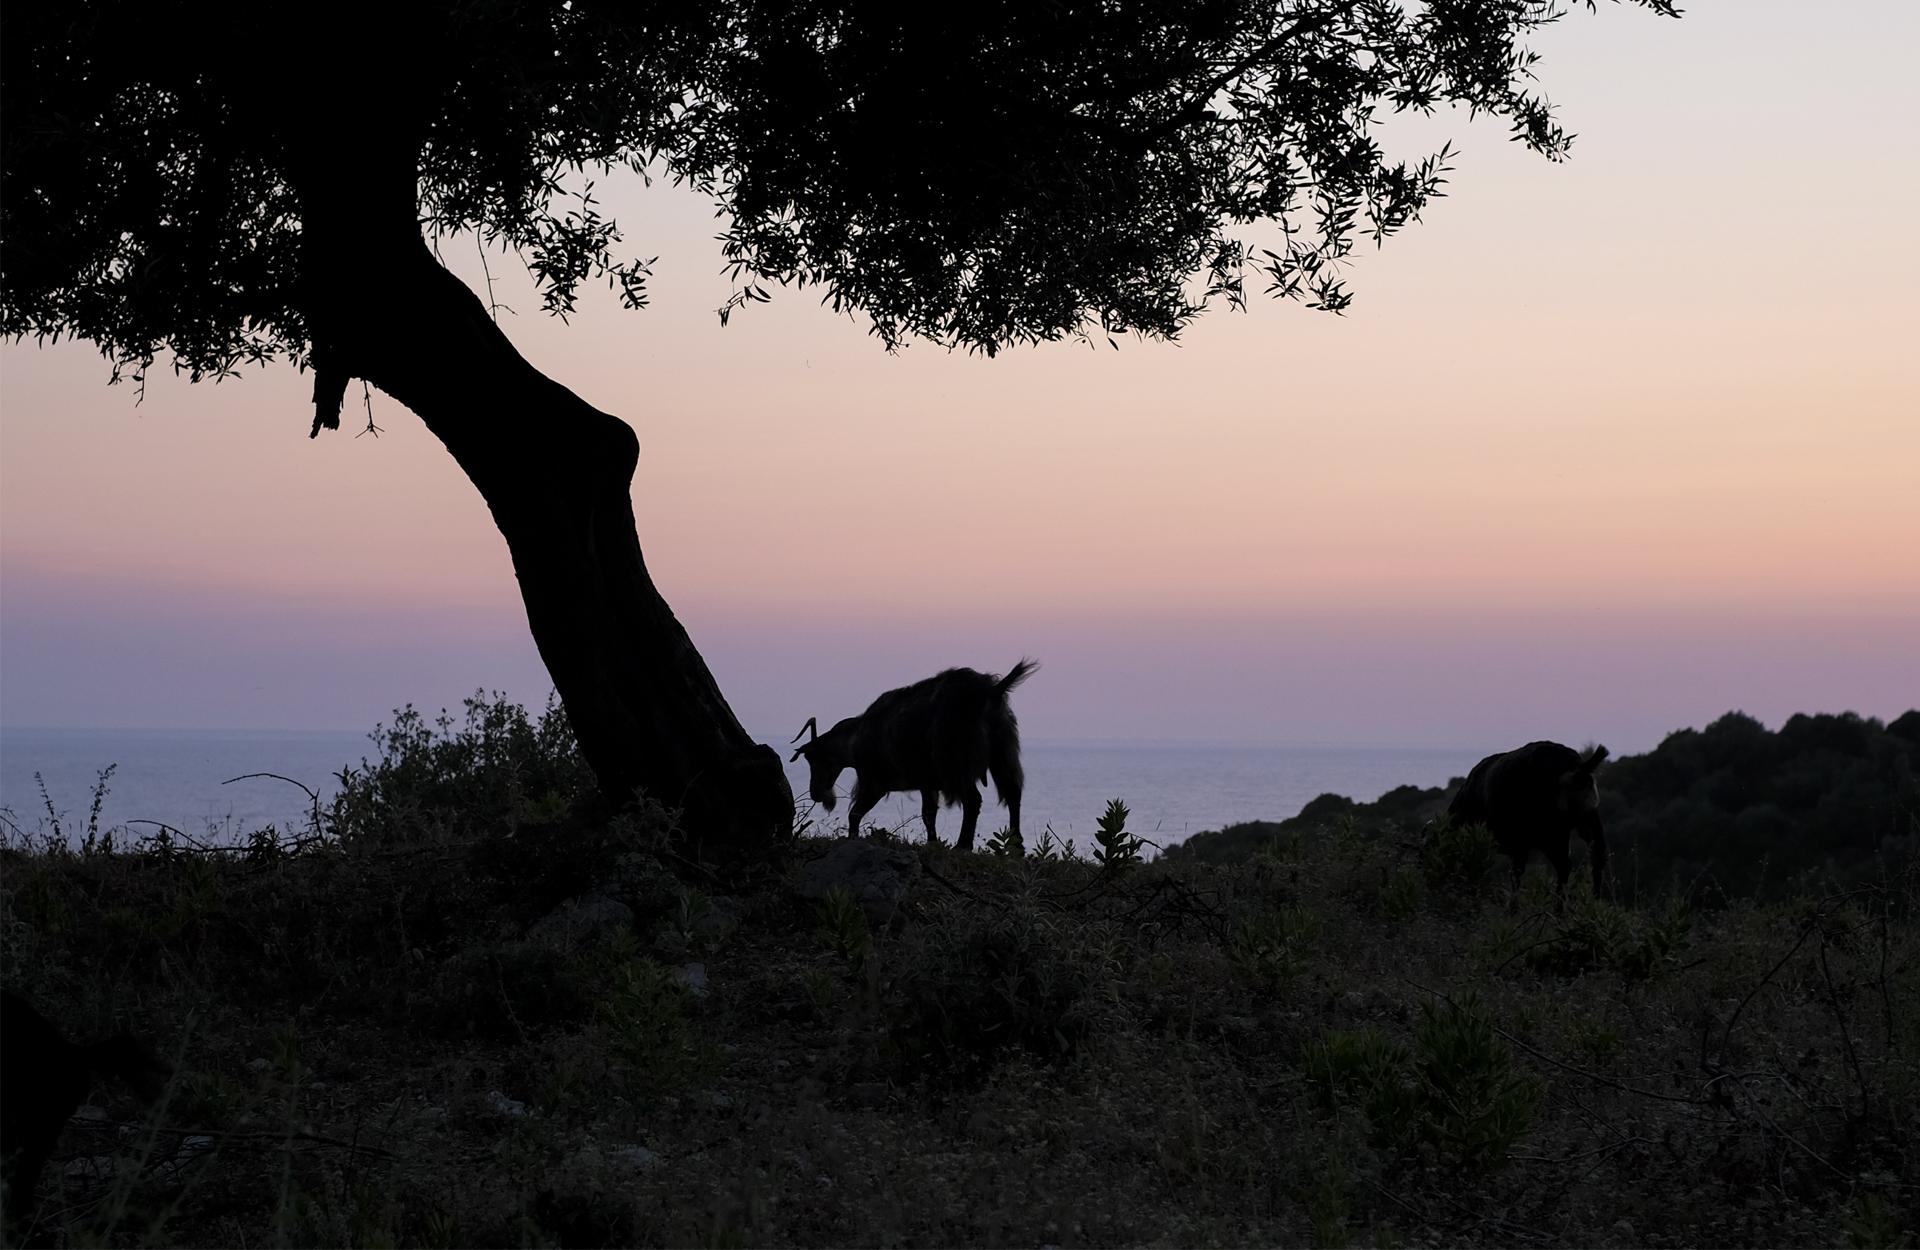 Goat, tree and pink sunset during a road trip in Albania